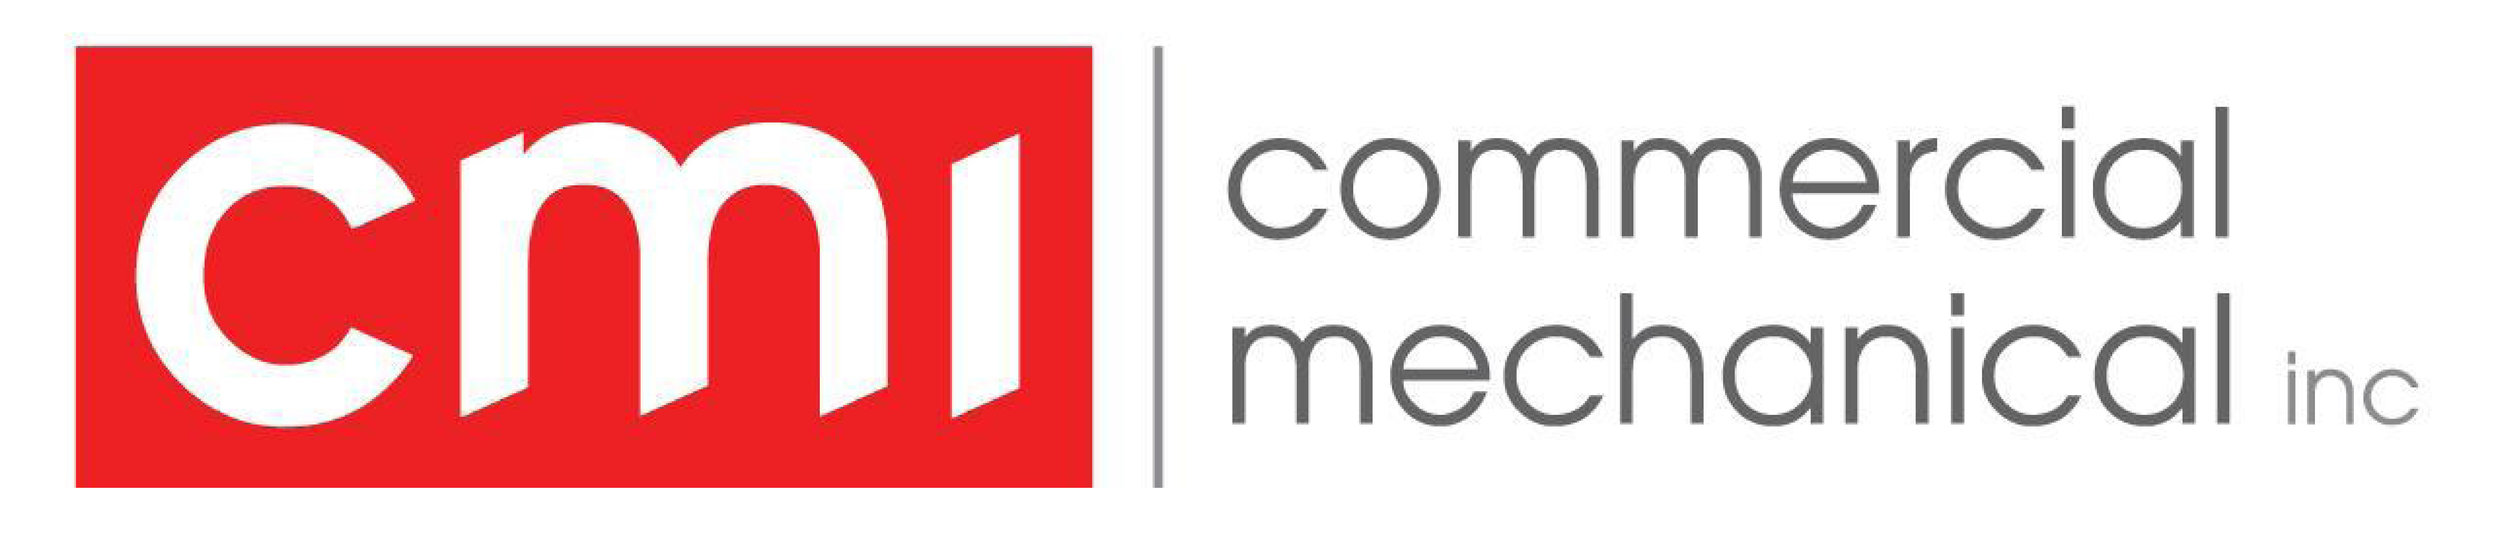 Commercial Mechanical Logo - Web.jpg